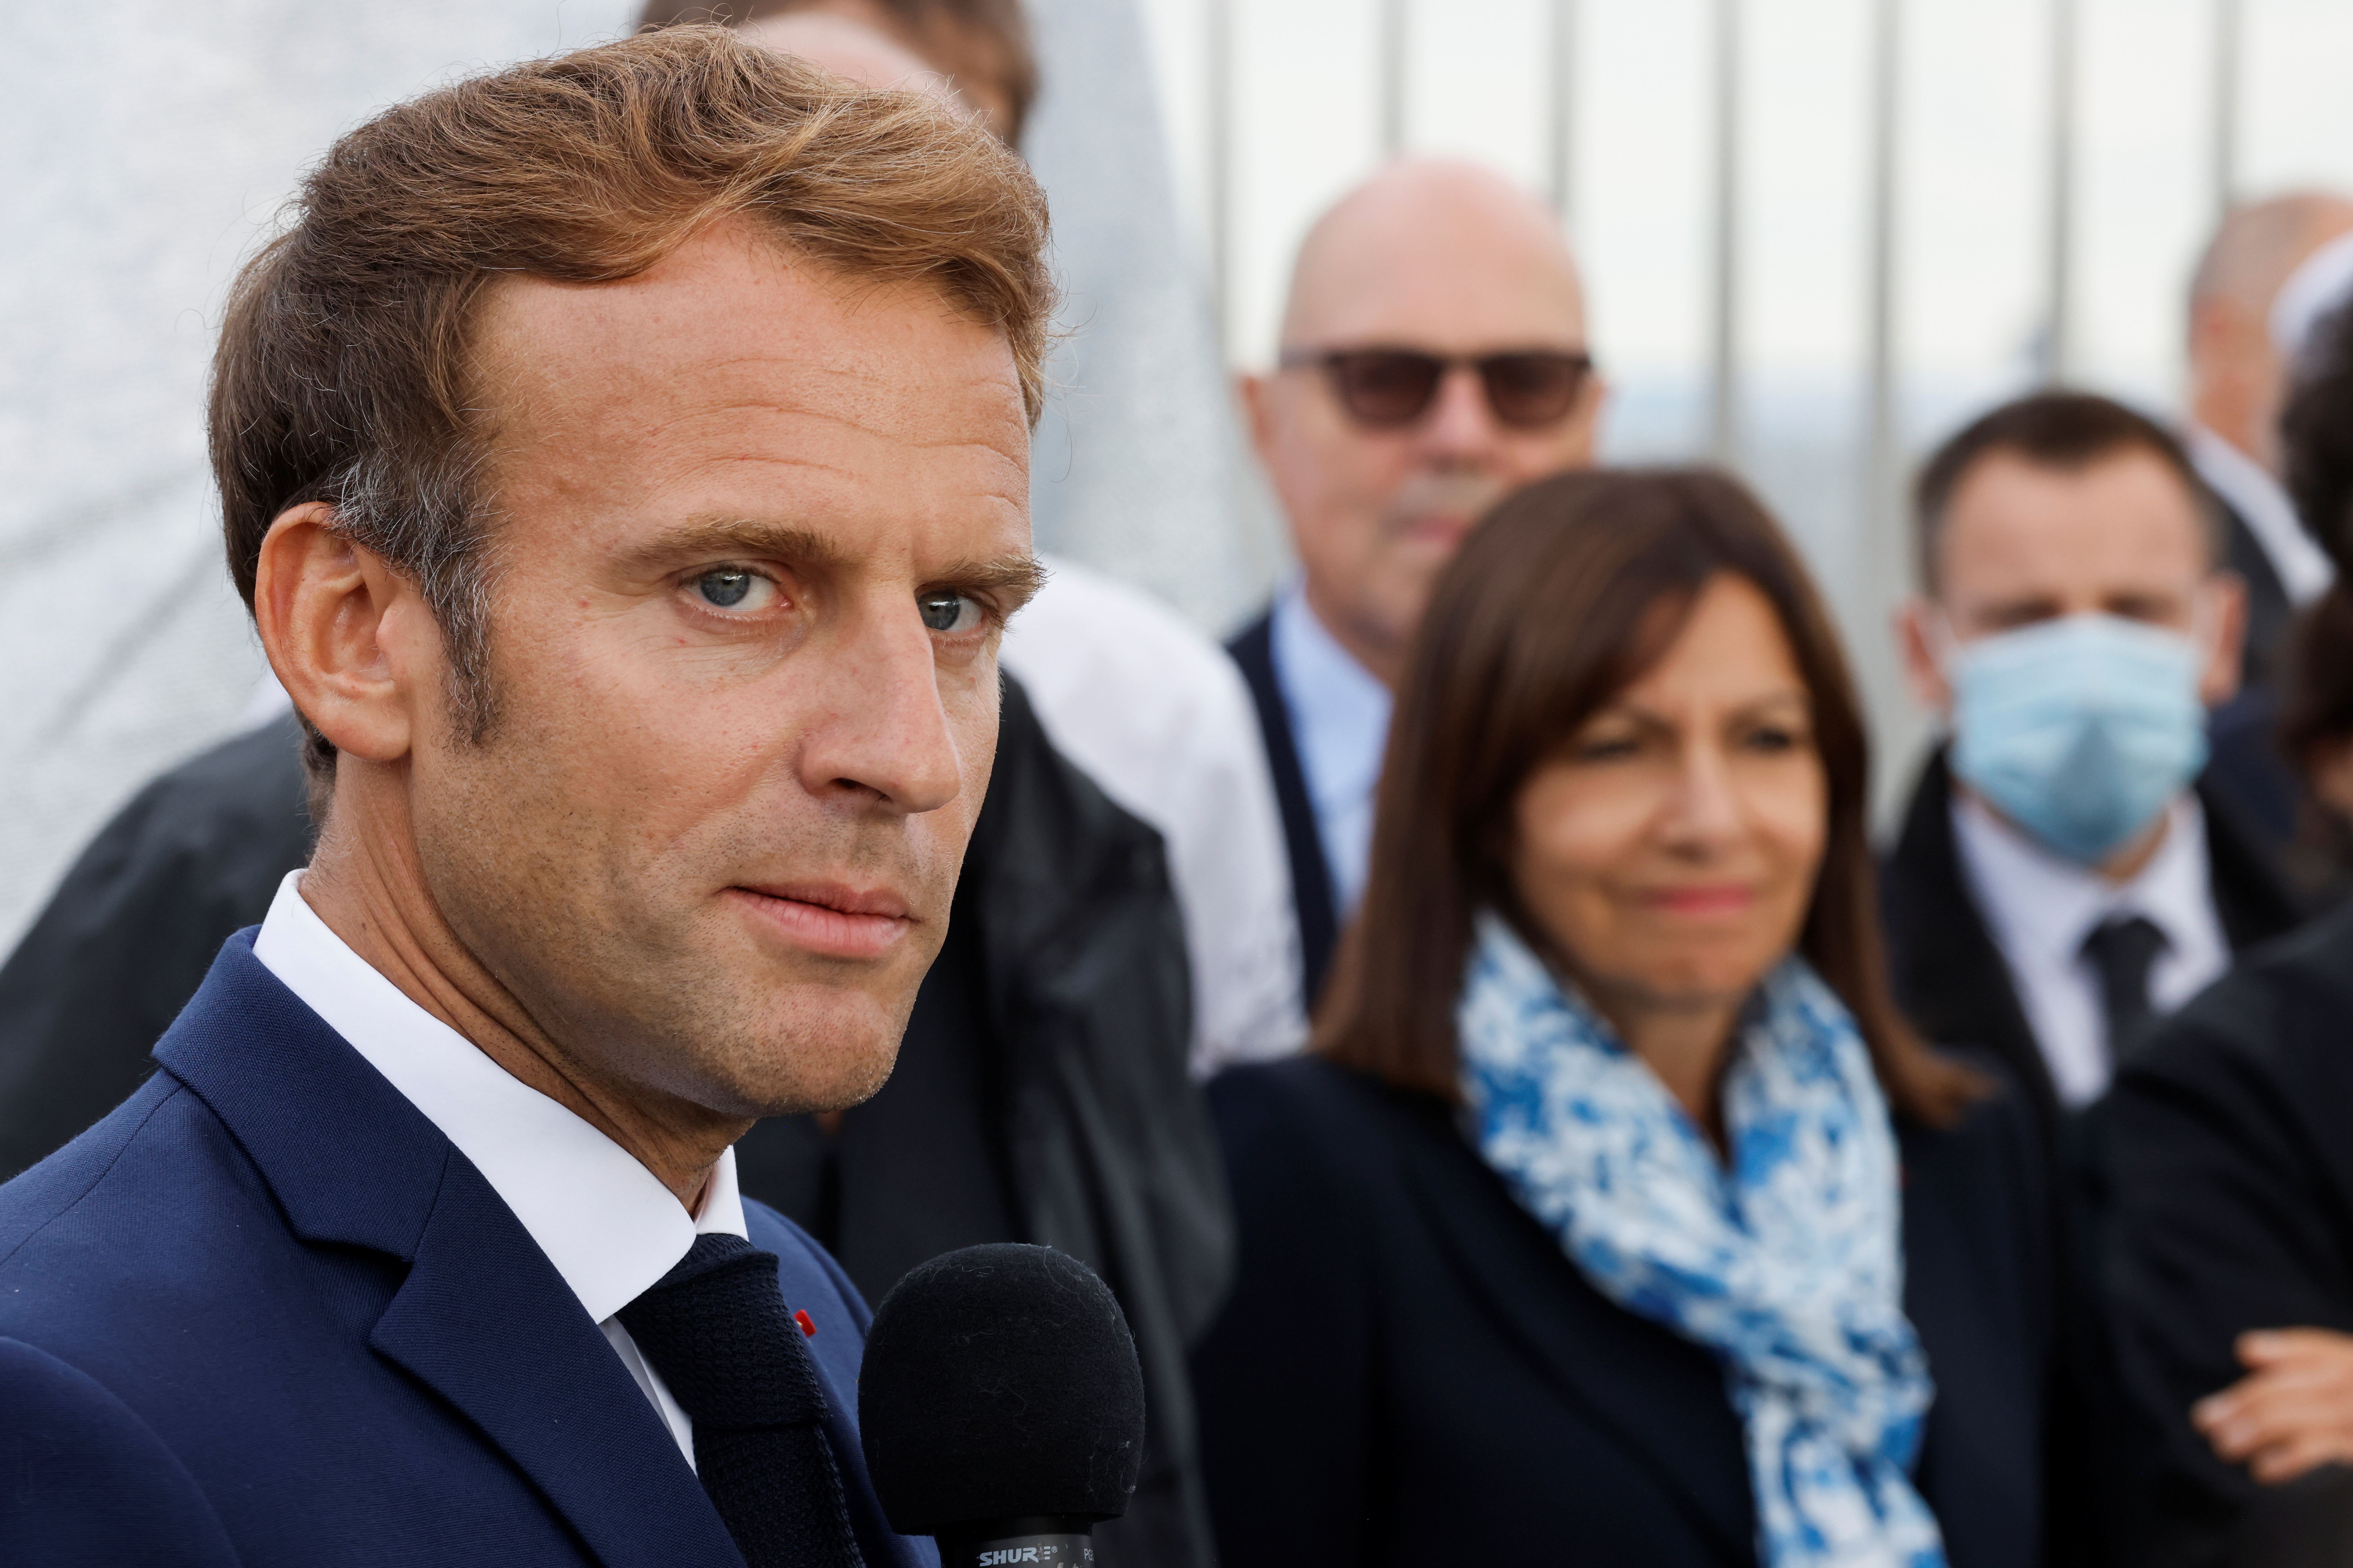 French President Emmanuel Macron speaks near Paris Mayor and Socialist Party (PS) candidate for the 2022 French presidential elections Anne Hidalgo during the inauguration of the wrapped Arc de Triomphe, designed by the late artist Christo, in Paris, France, September 16, 2021. Ludovic Marin/Pool via REUTERS